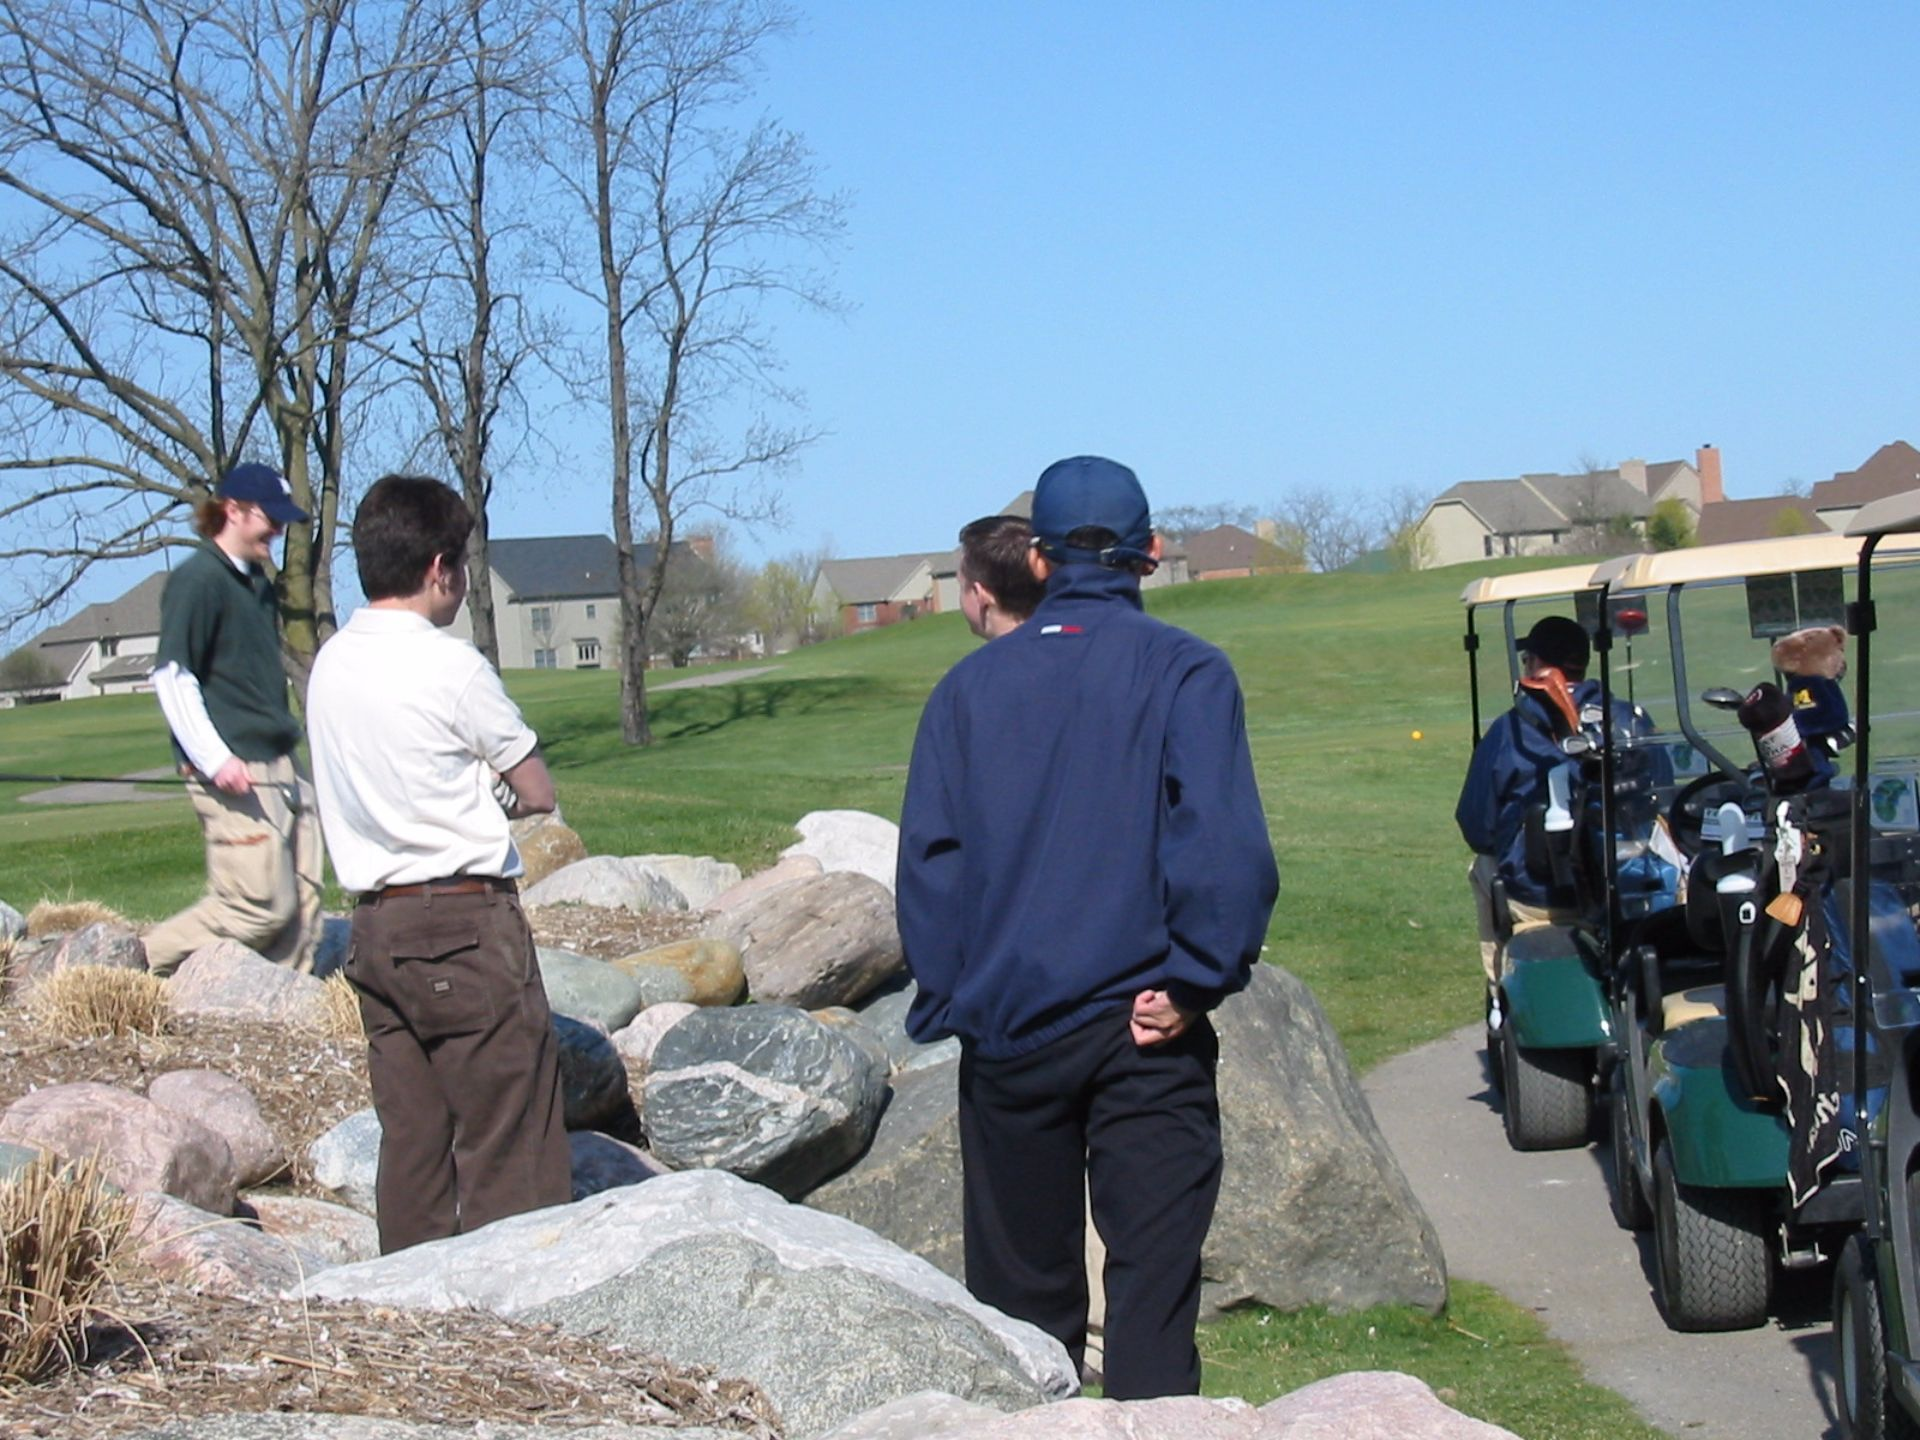 golf_outing_103-0398_IMG.jpg